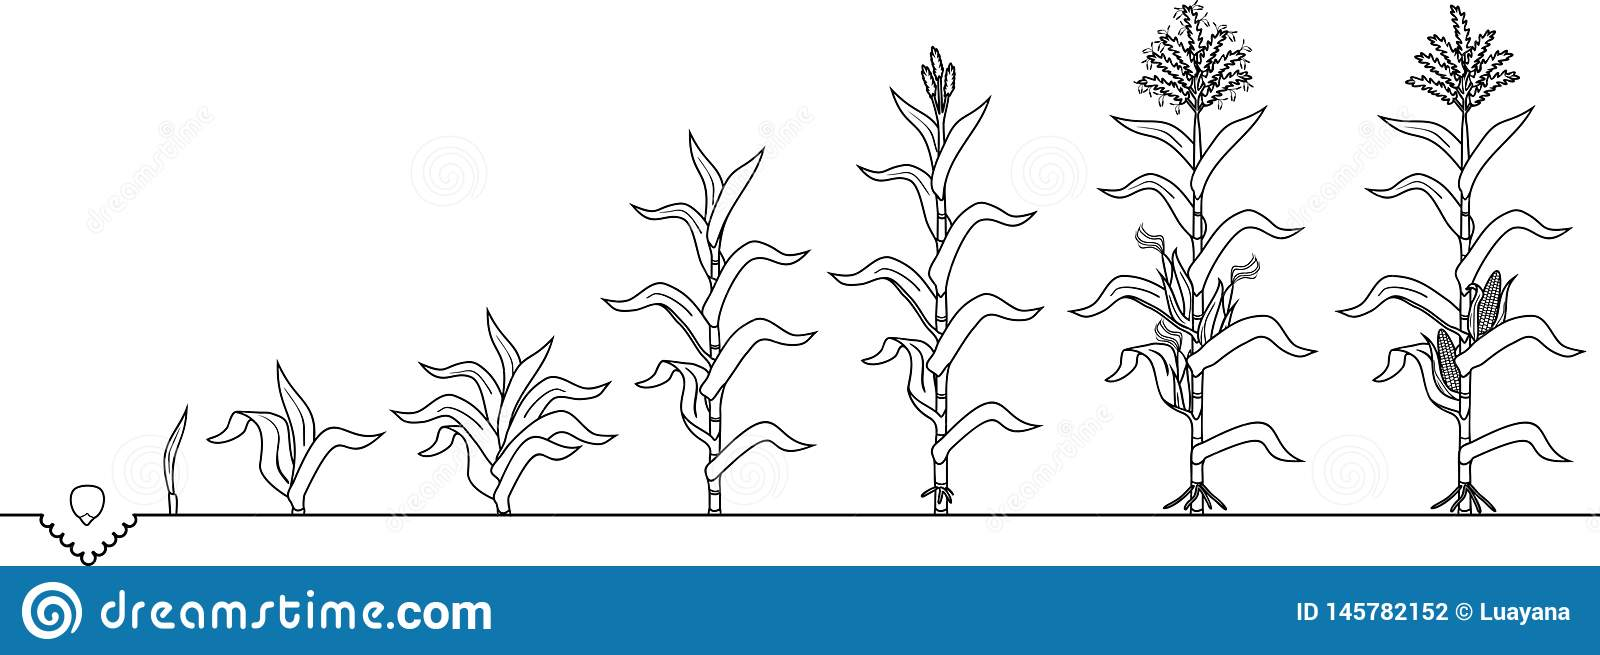 Free Life Cycle Of A Plant Coloring Page, Download Free Clip Art ... | 655x1600